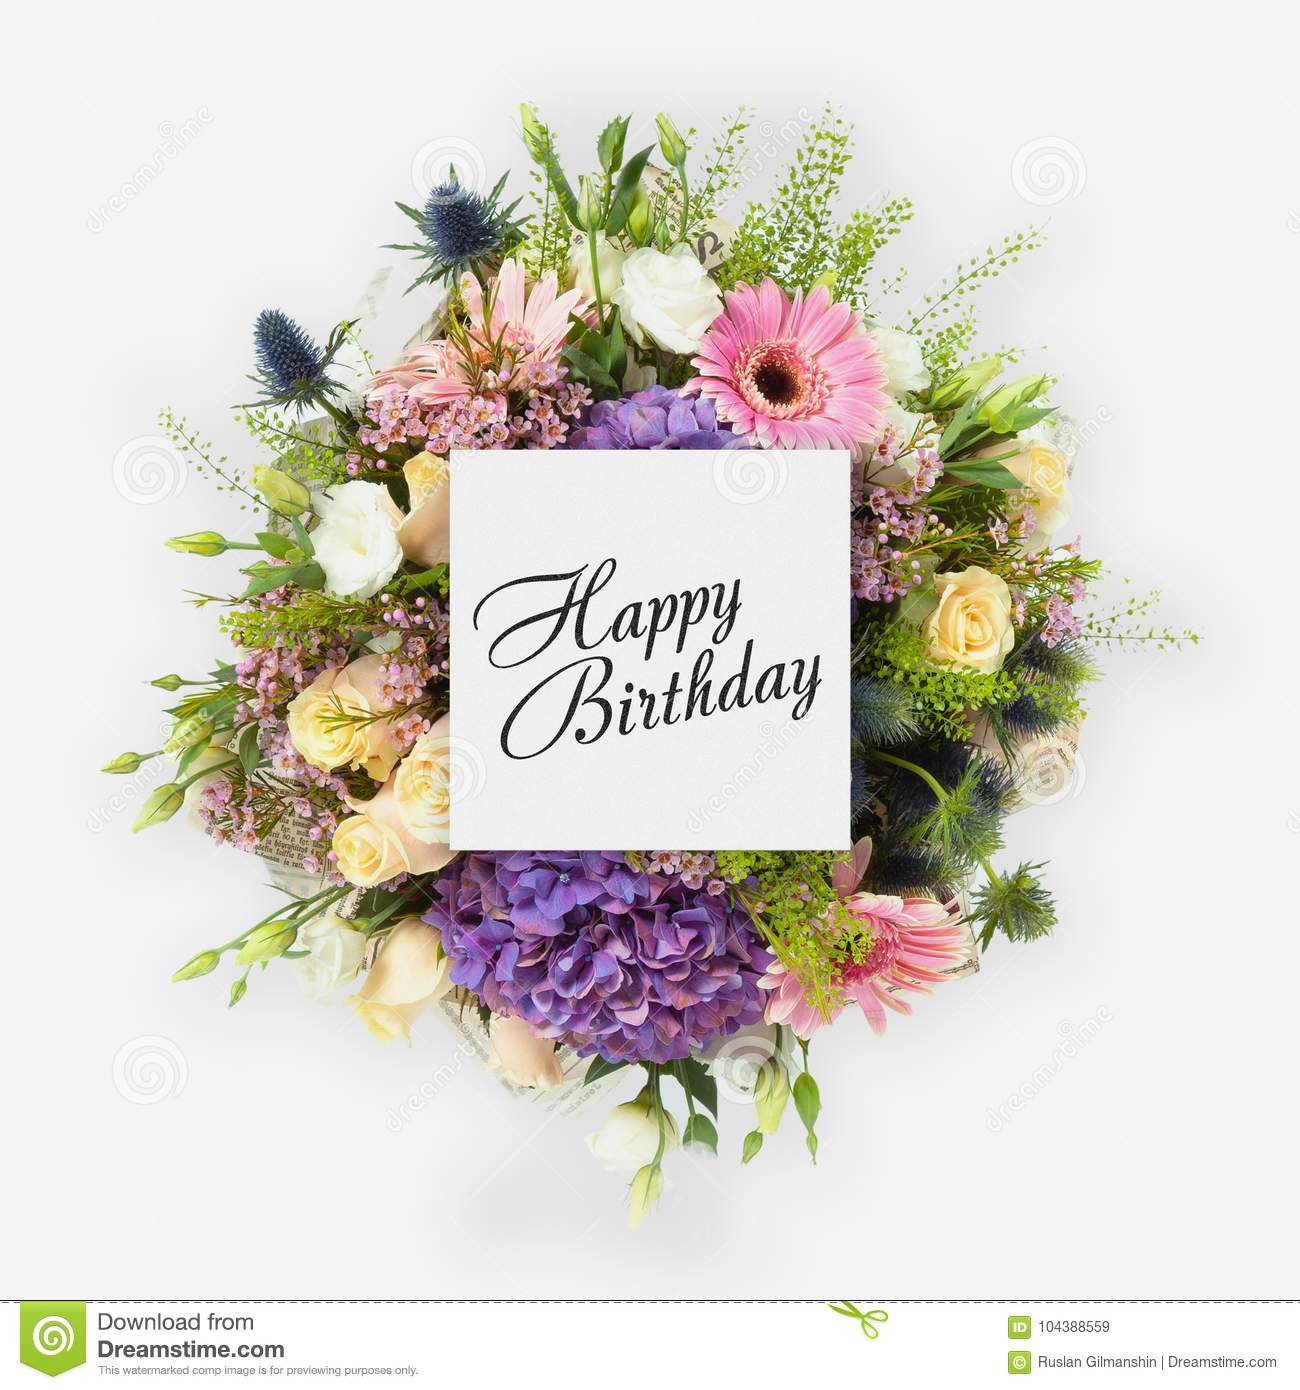 Happy birthday card with flowers flat lay stock image image of happy birthday card with flowers flat lay izmirmasajfo Image collections